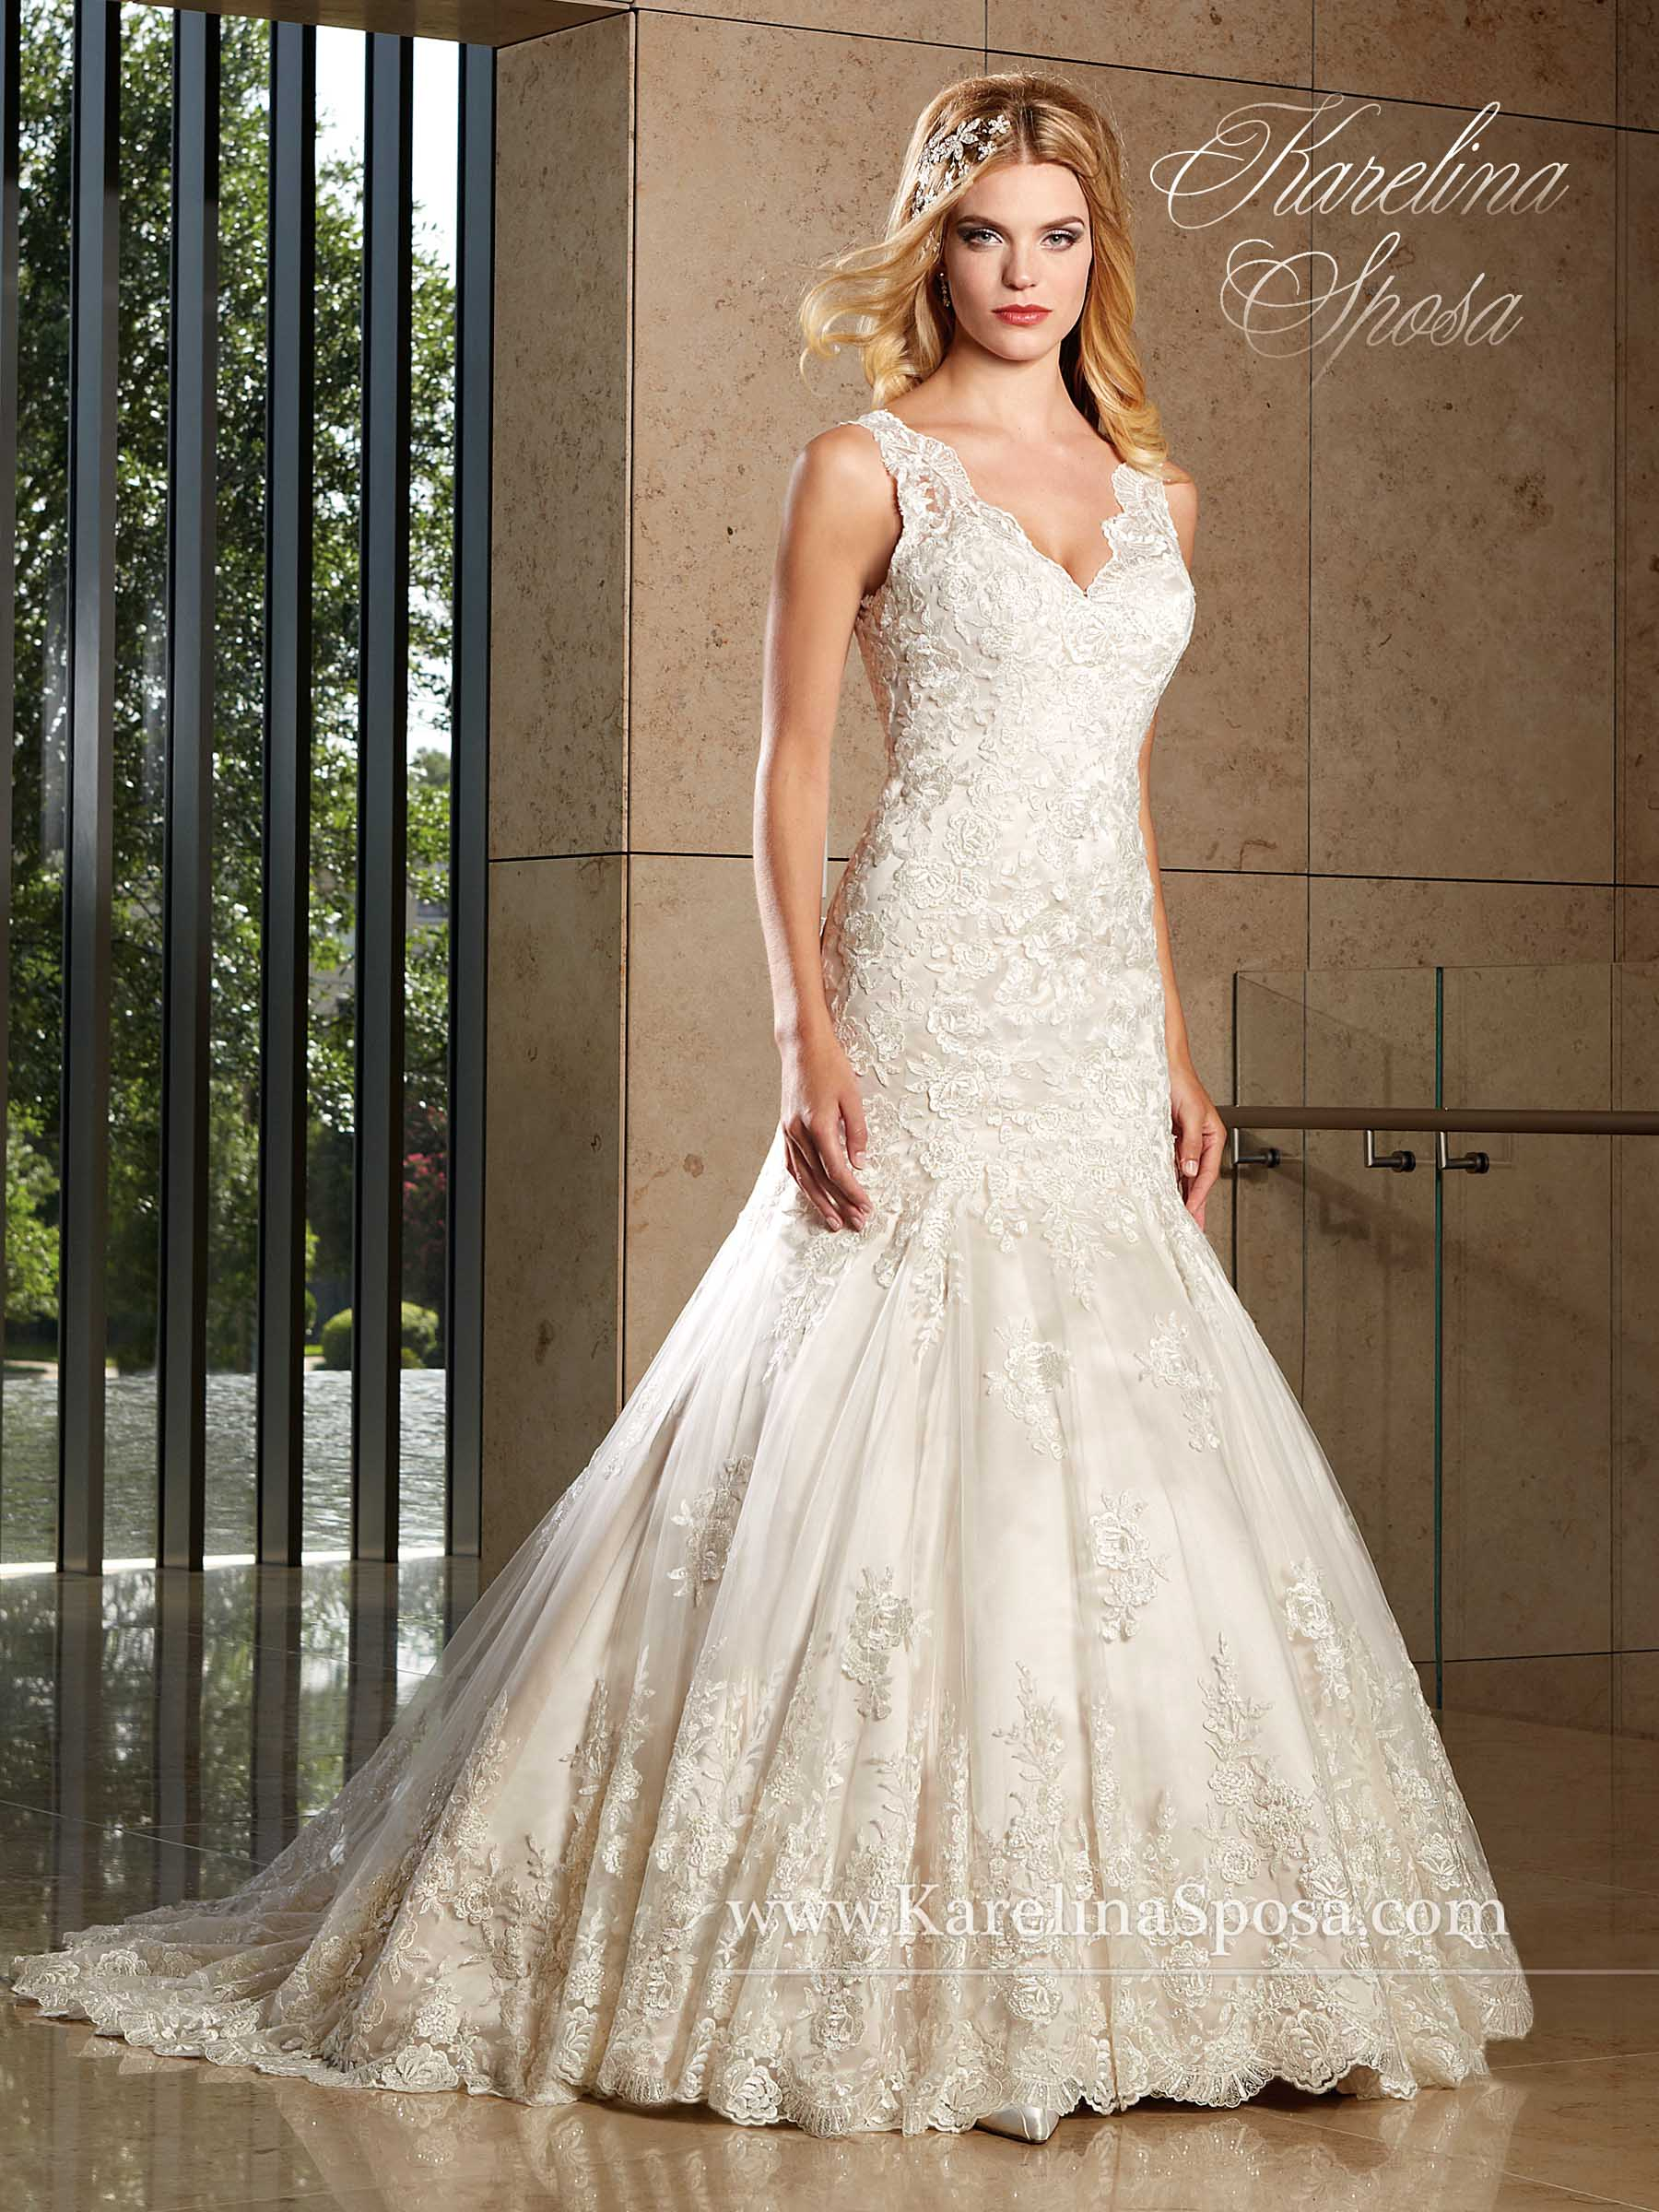 Trumpet Style Wedding Dresses Lace : Home wedding dresses lace v neck trumpet style bridal gown c